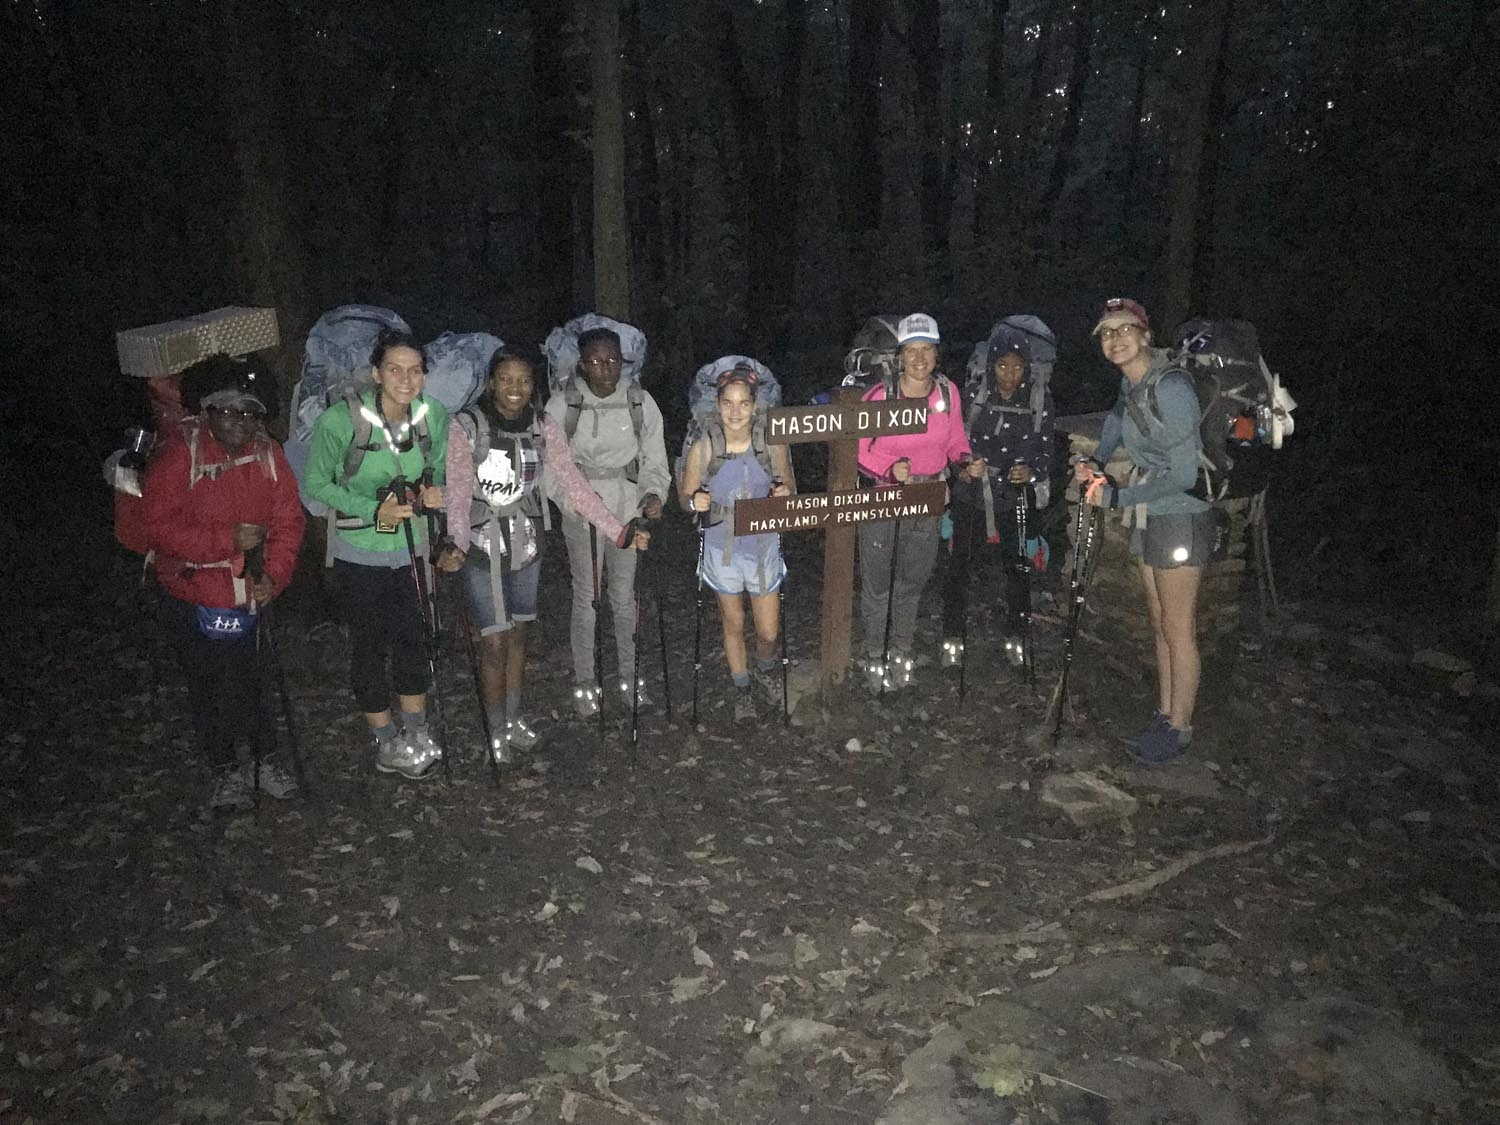 Our first stop of the hike was the Mason Dixon Line. It was just at dusk so we used that opportunity to pull the headlamps out and get ready for a five mile night hike.